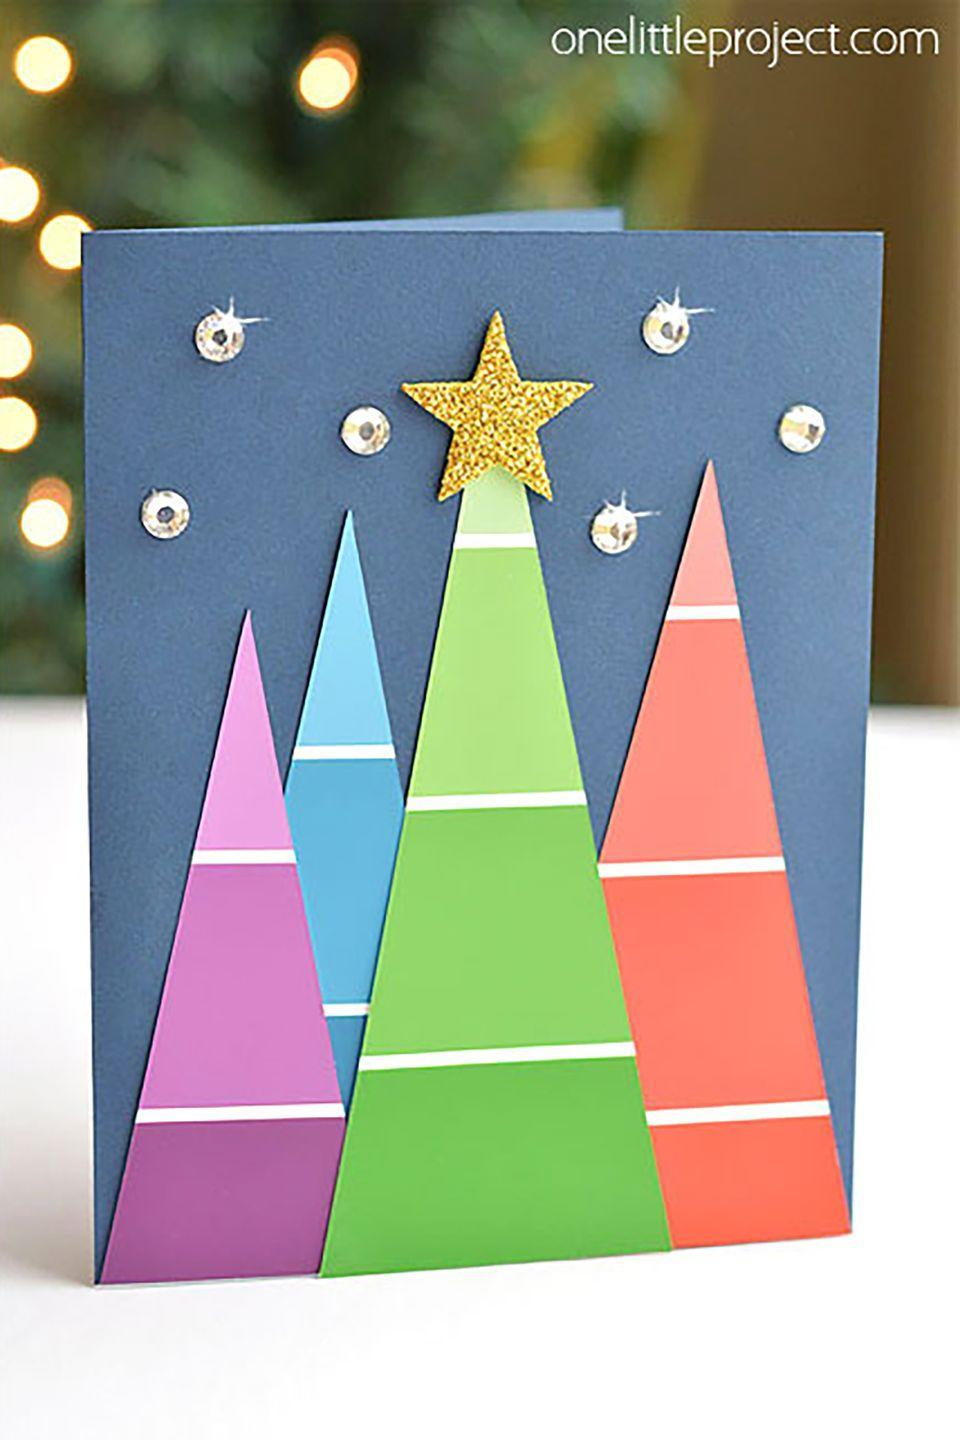 """<p>Reuse old paint chips to create a colorful forest of festive Christmas trees you can send out to loved ones.</p><p><strong>Get the tutorial at <a href=""""http://onelittleproject.com/paint-chip-christmas-cards/"""" rel=""""nofollow noopener"""" target=""""_blank"""" data-ylk=""""slk:One Little Project"""" class=""""link rapid-noclick-resp"""">One Little Project</a>.</strong><br></p><p><a class=""""link rapid-noclick-resp"""" href=""""https://www.amazon.com/Beading-Station-1440-Piece-Brilliant-Rhinestones/dp/B007G6M8GA/?tag=syn-yahoo-20&ascsubtag=%5Bartid%7C10050.g.3872%5Bsrc%7Cyahoo-us"""" rel=""""nofollow noopener"""" target=""""_blank"""" data-ylk=""""slk:SHOP RHINESTONES"""">SHOP RHINESTONES</a></p>"""